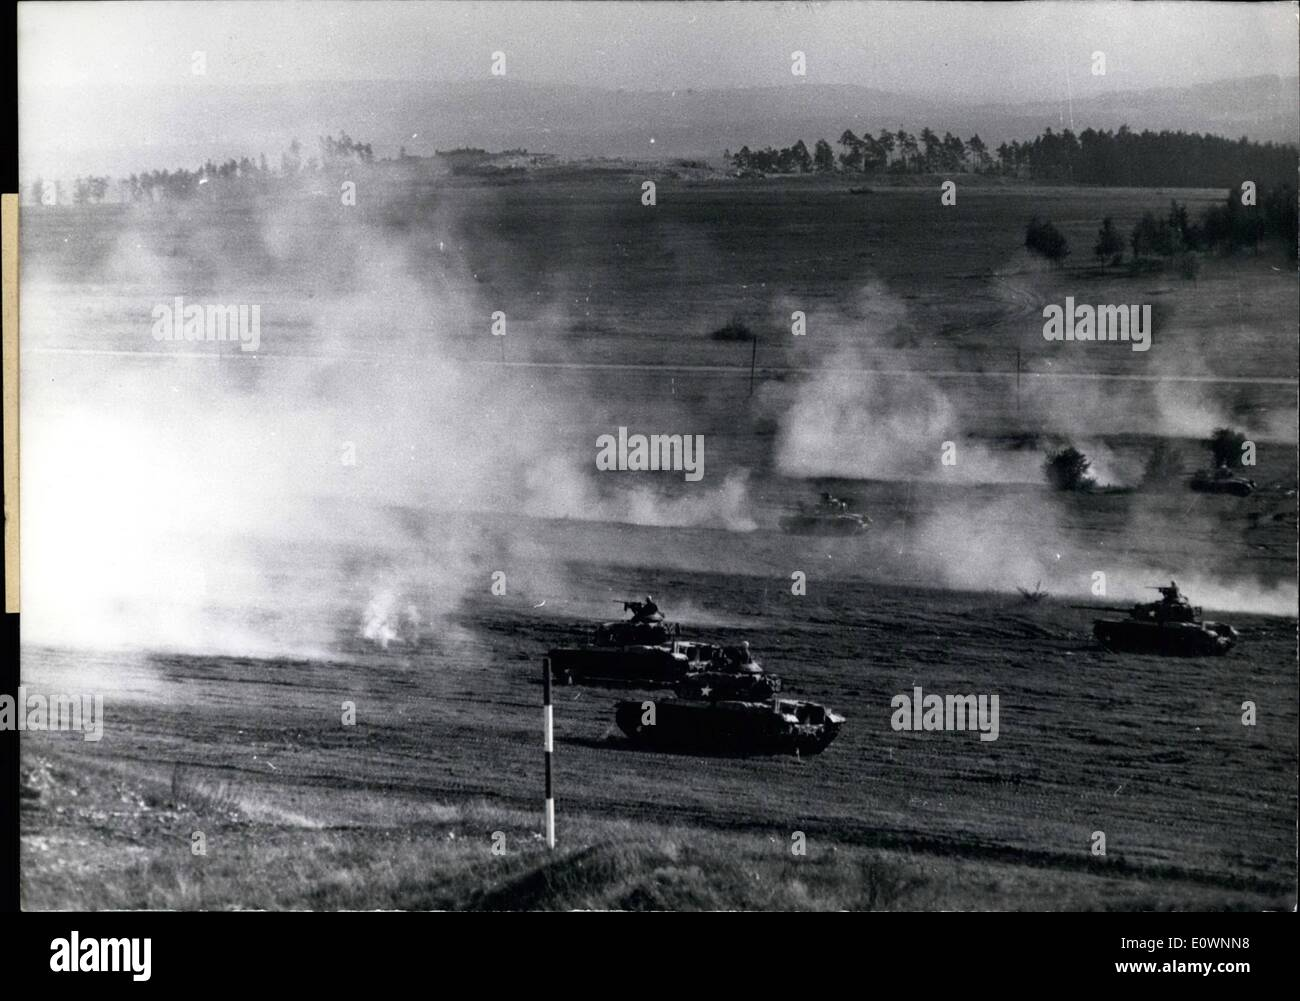 Oct. 10, 1963 - Military Exercise of thee Nations: At Grafenwohr Southern Germany 70 officers of the NATO, who are members of - Stock Image